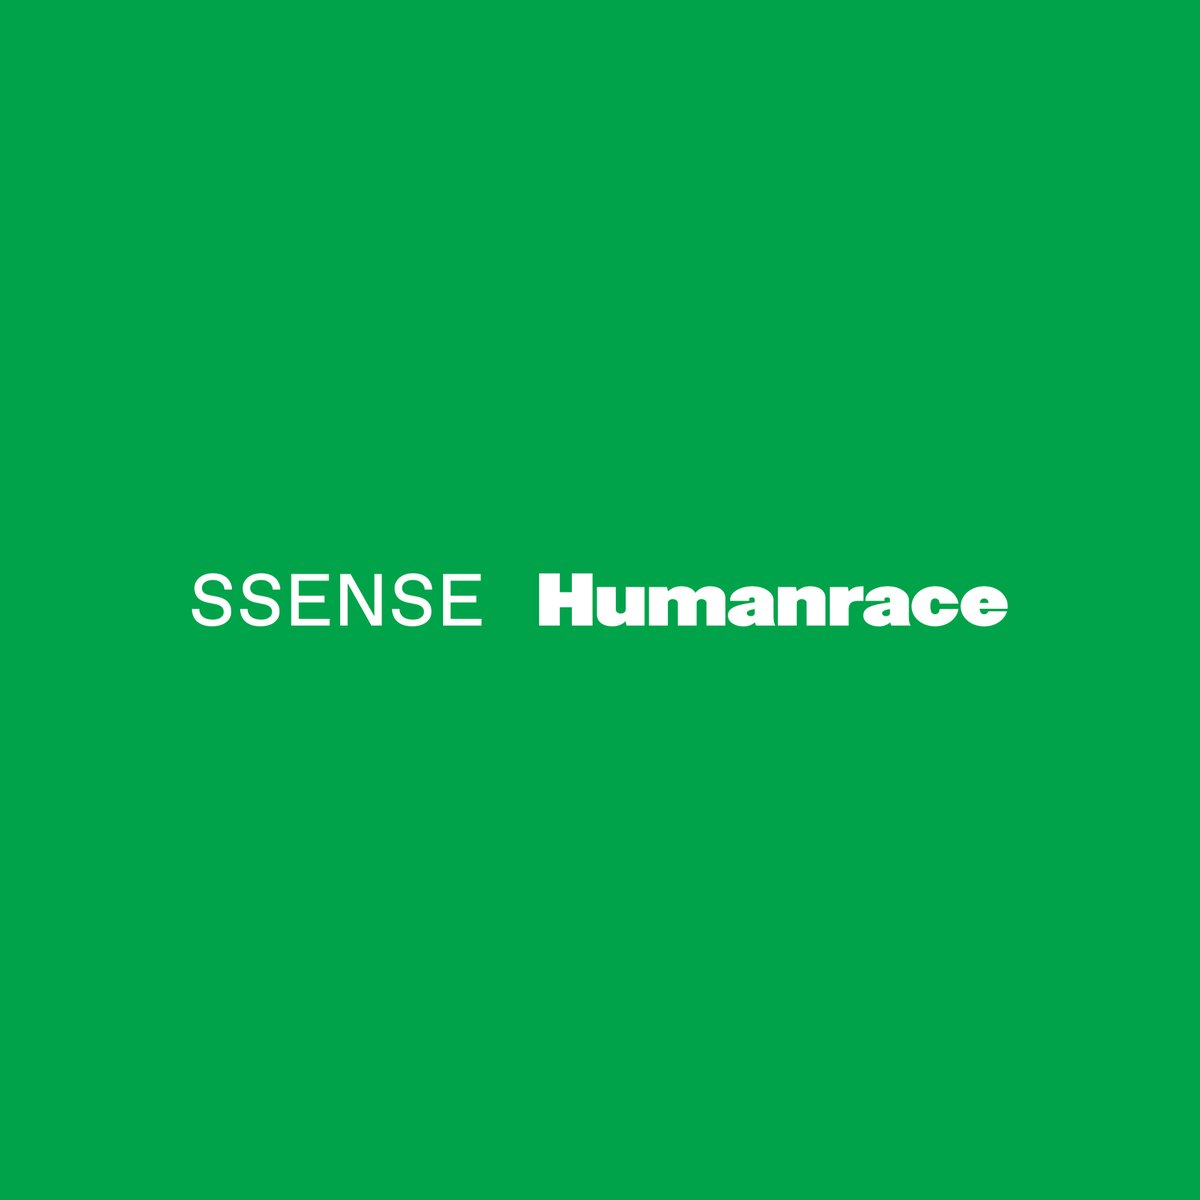 Coming soon: House of @Humanrace, presented by @Pharrell Williams, for #SSENSE.   Stay tuned for more information.  #SSENSEHouseOfHumanrace https://t.co/S0CiPQsncw https://t.co/WxczmiUCXT